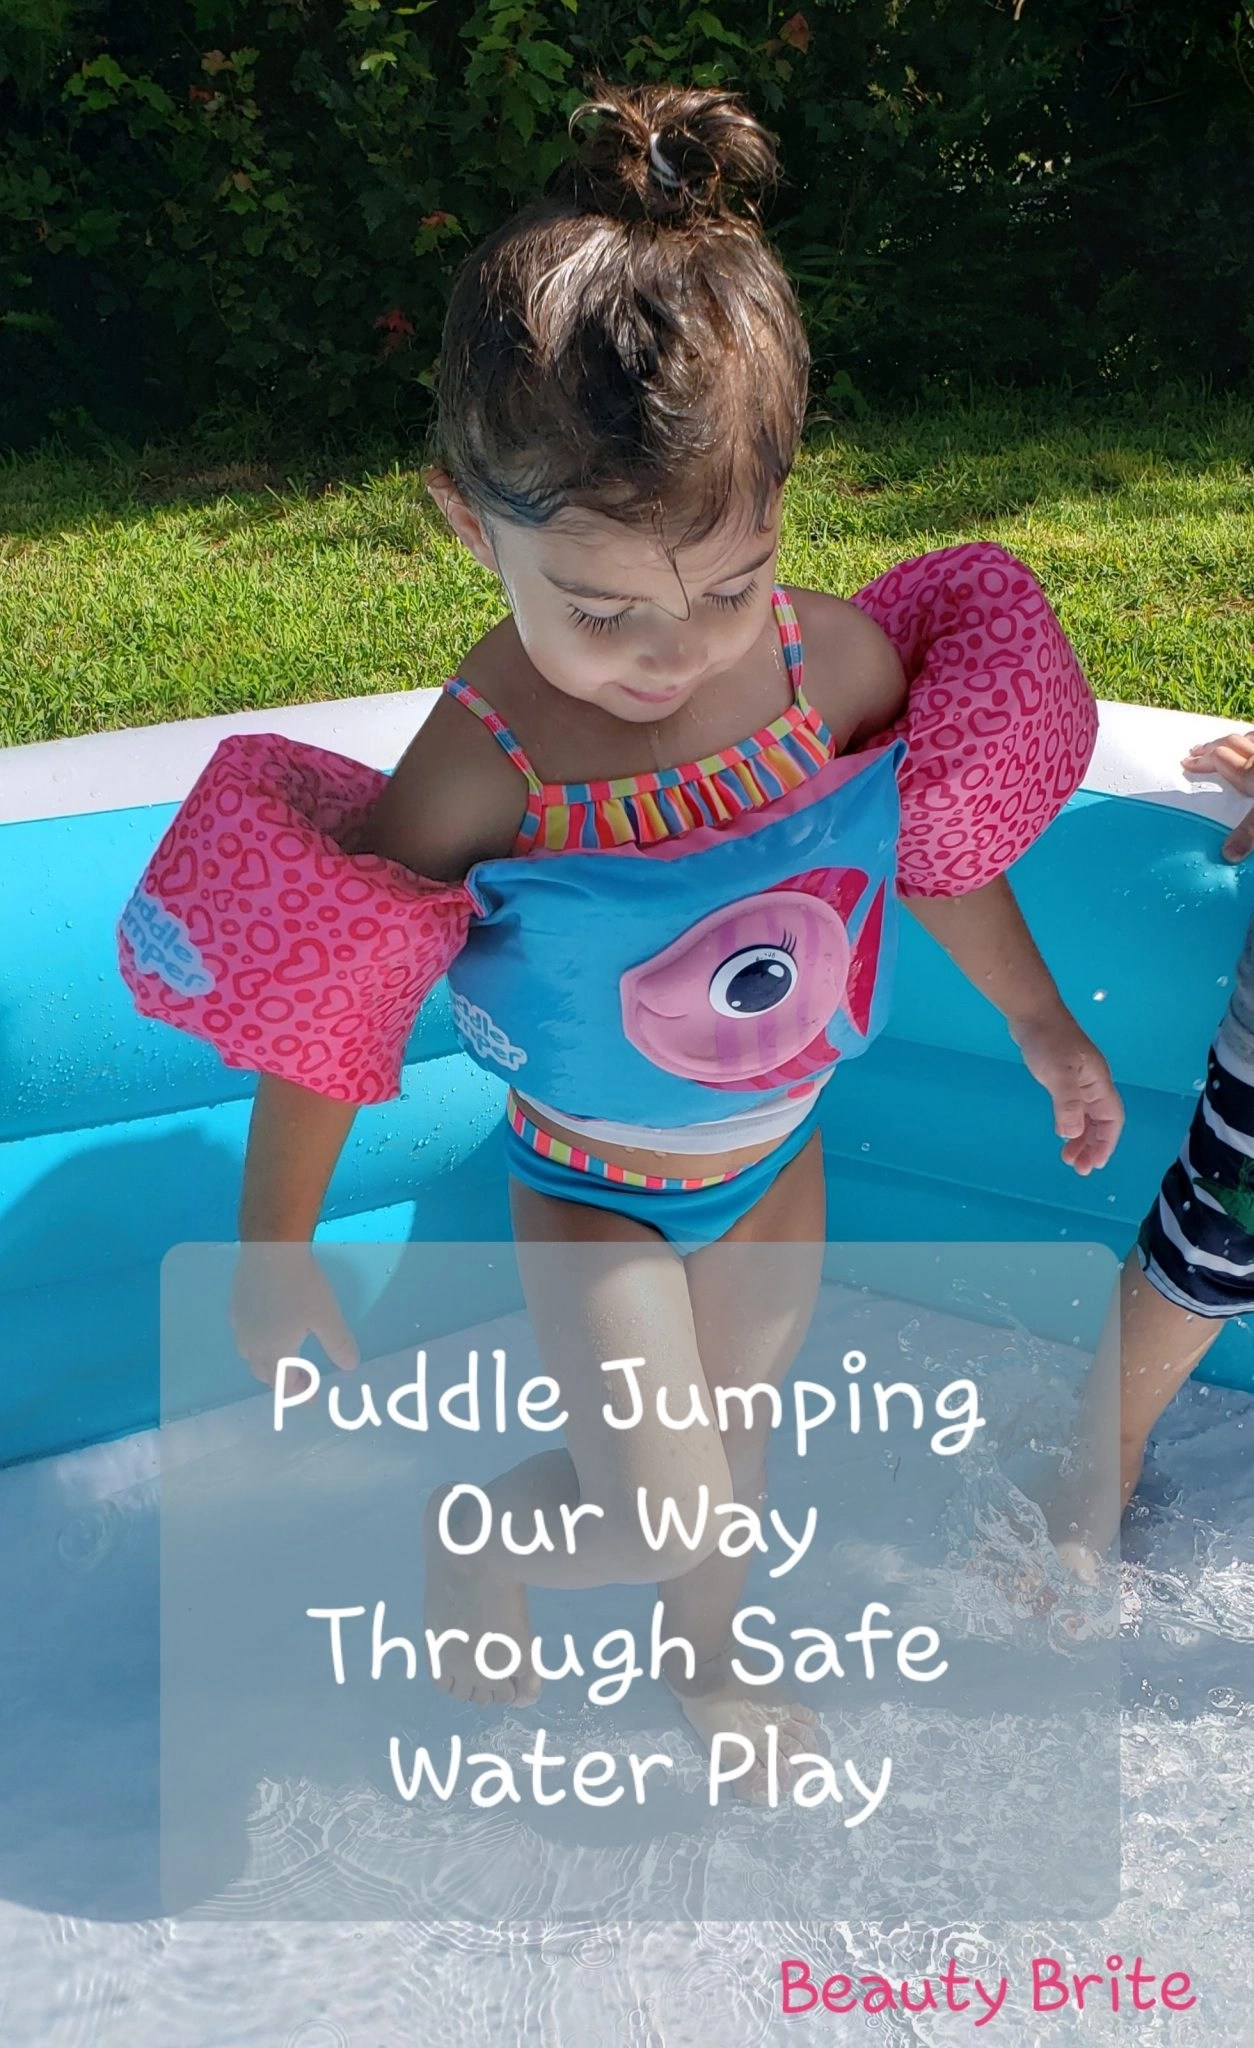 Puddle Jumping Our Way Through Safe Water Play